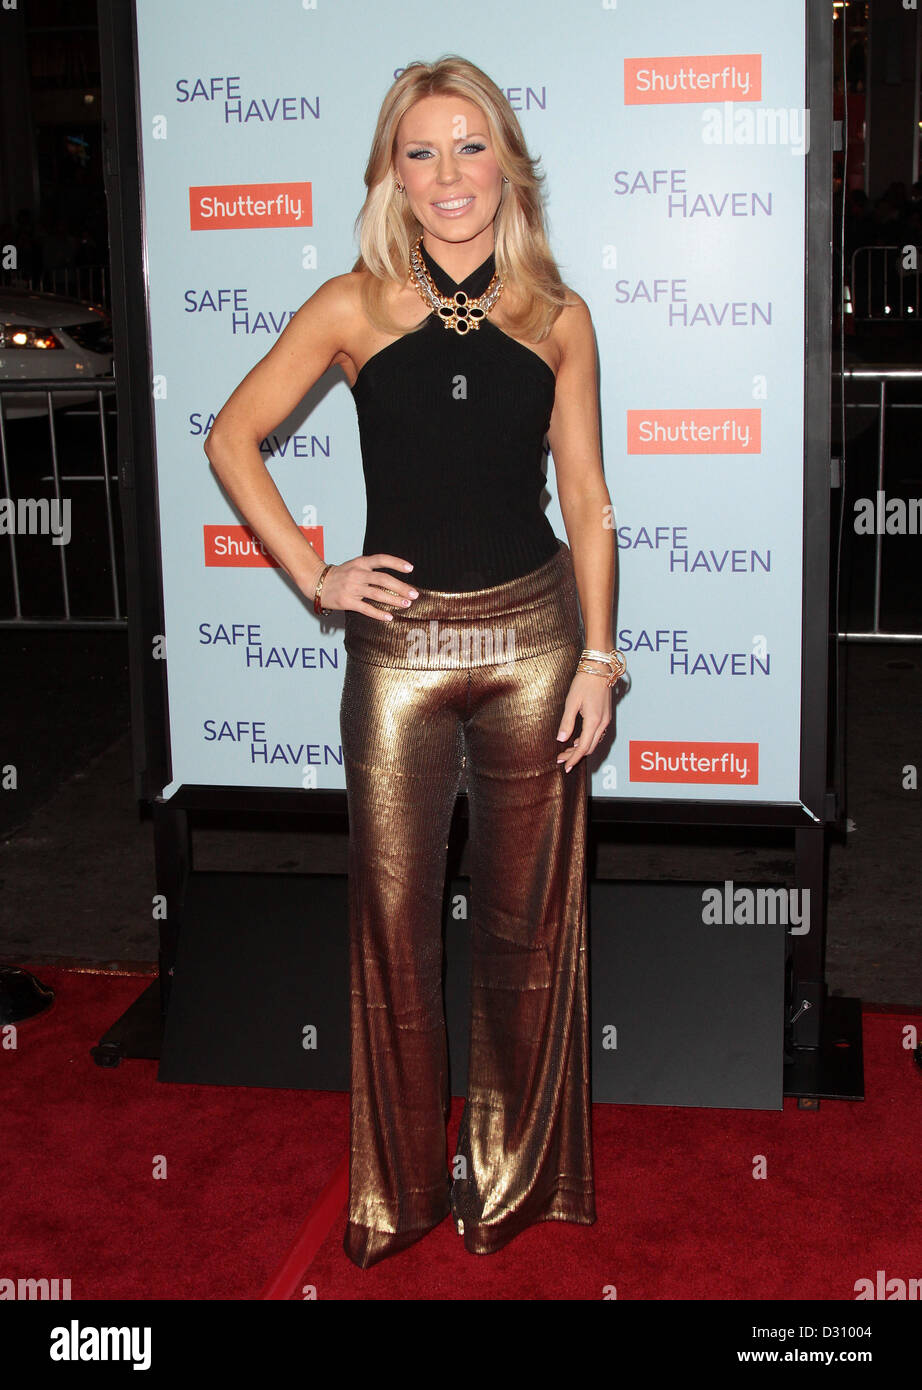 GRETCHEN ROSSI SAFE HAVEN PREMIERE LOS ANGELES CALIFORNIA USA 05 February 2013 Stock Photo